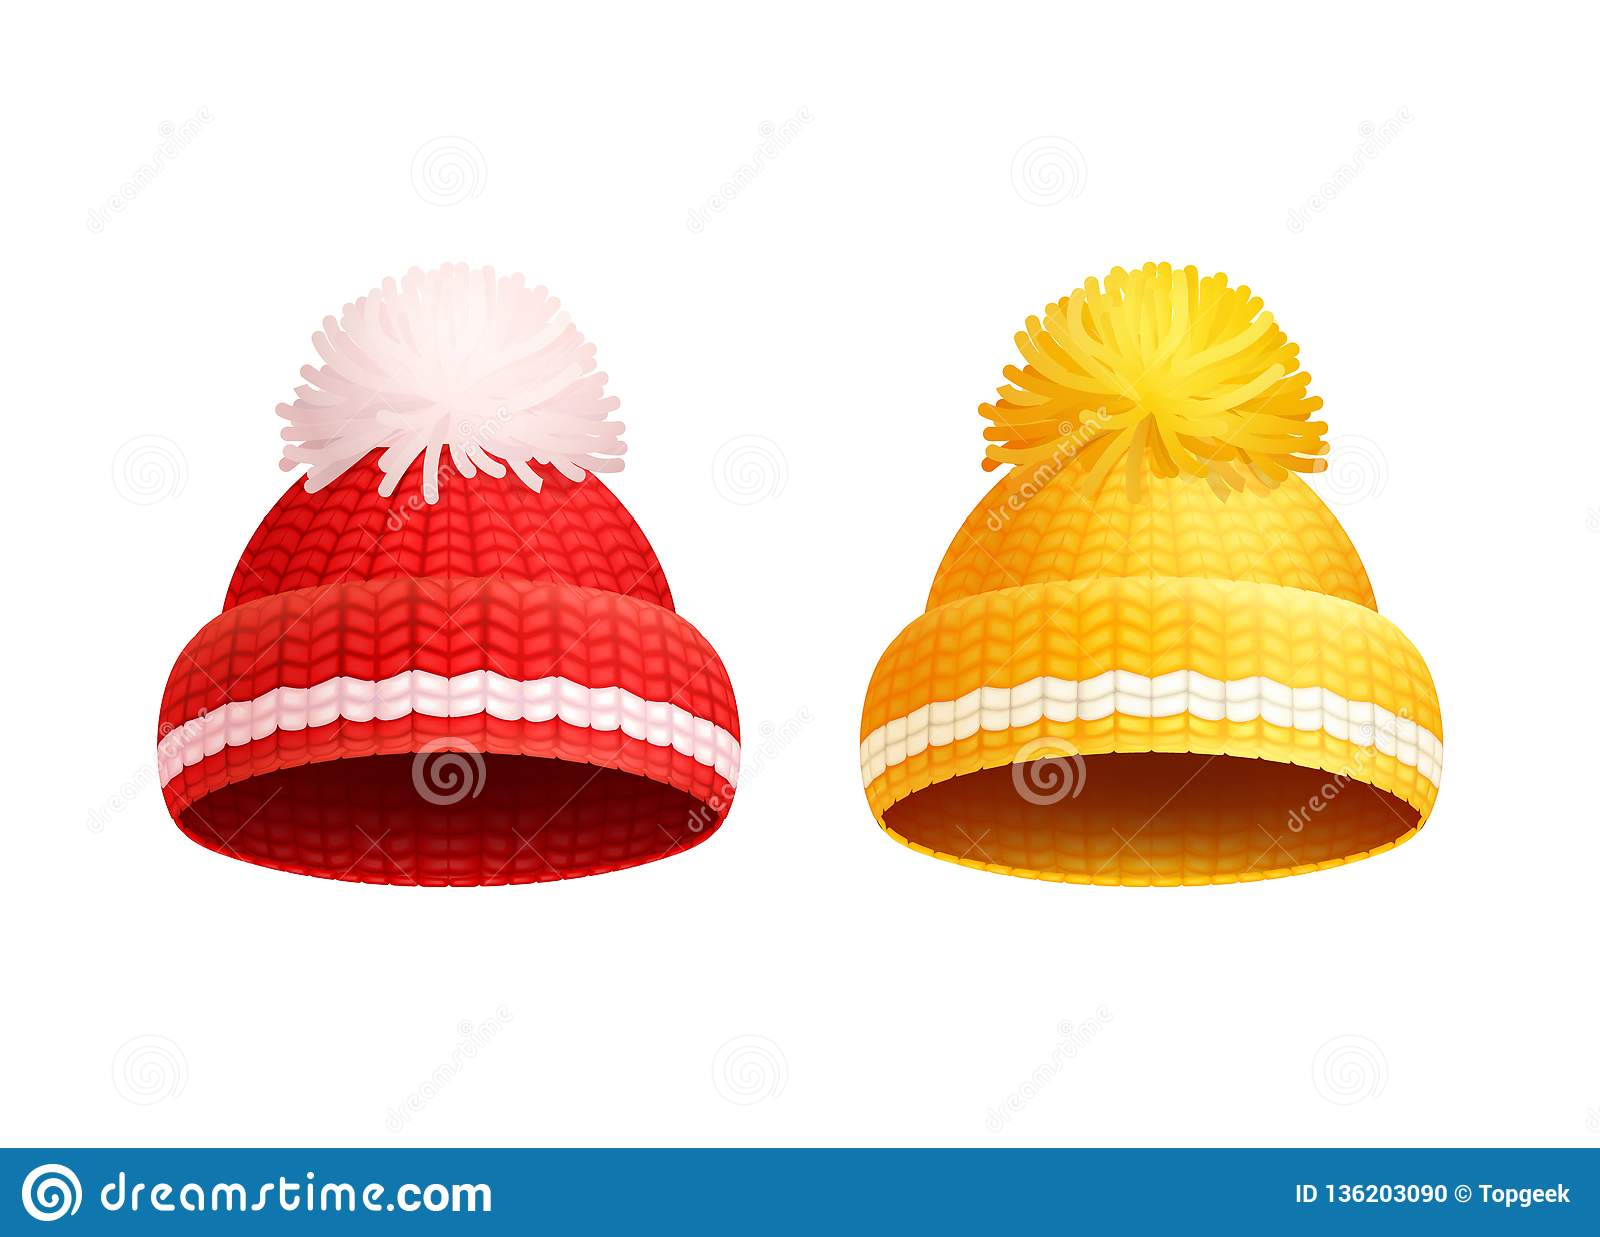 6bb741dc51a Knitted red and yellow hat with white pom-pom vector icons. Warm headwear  items